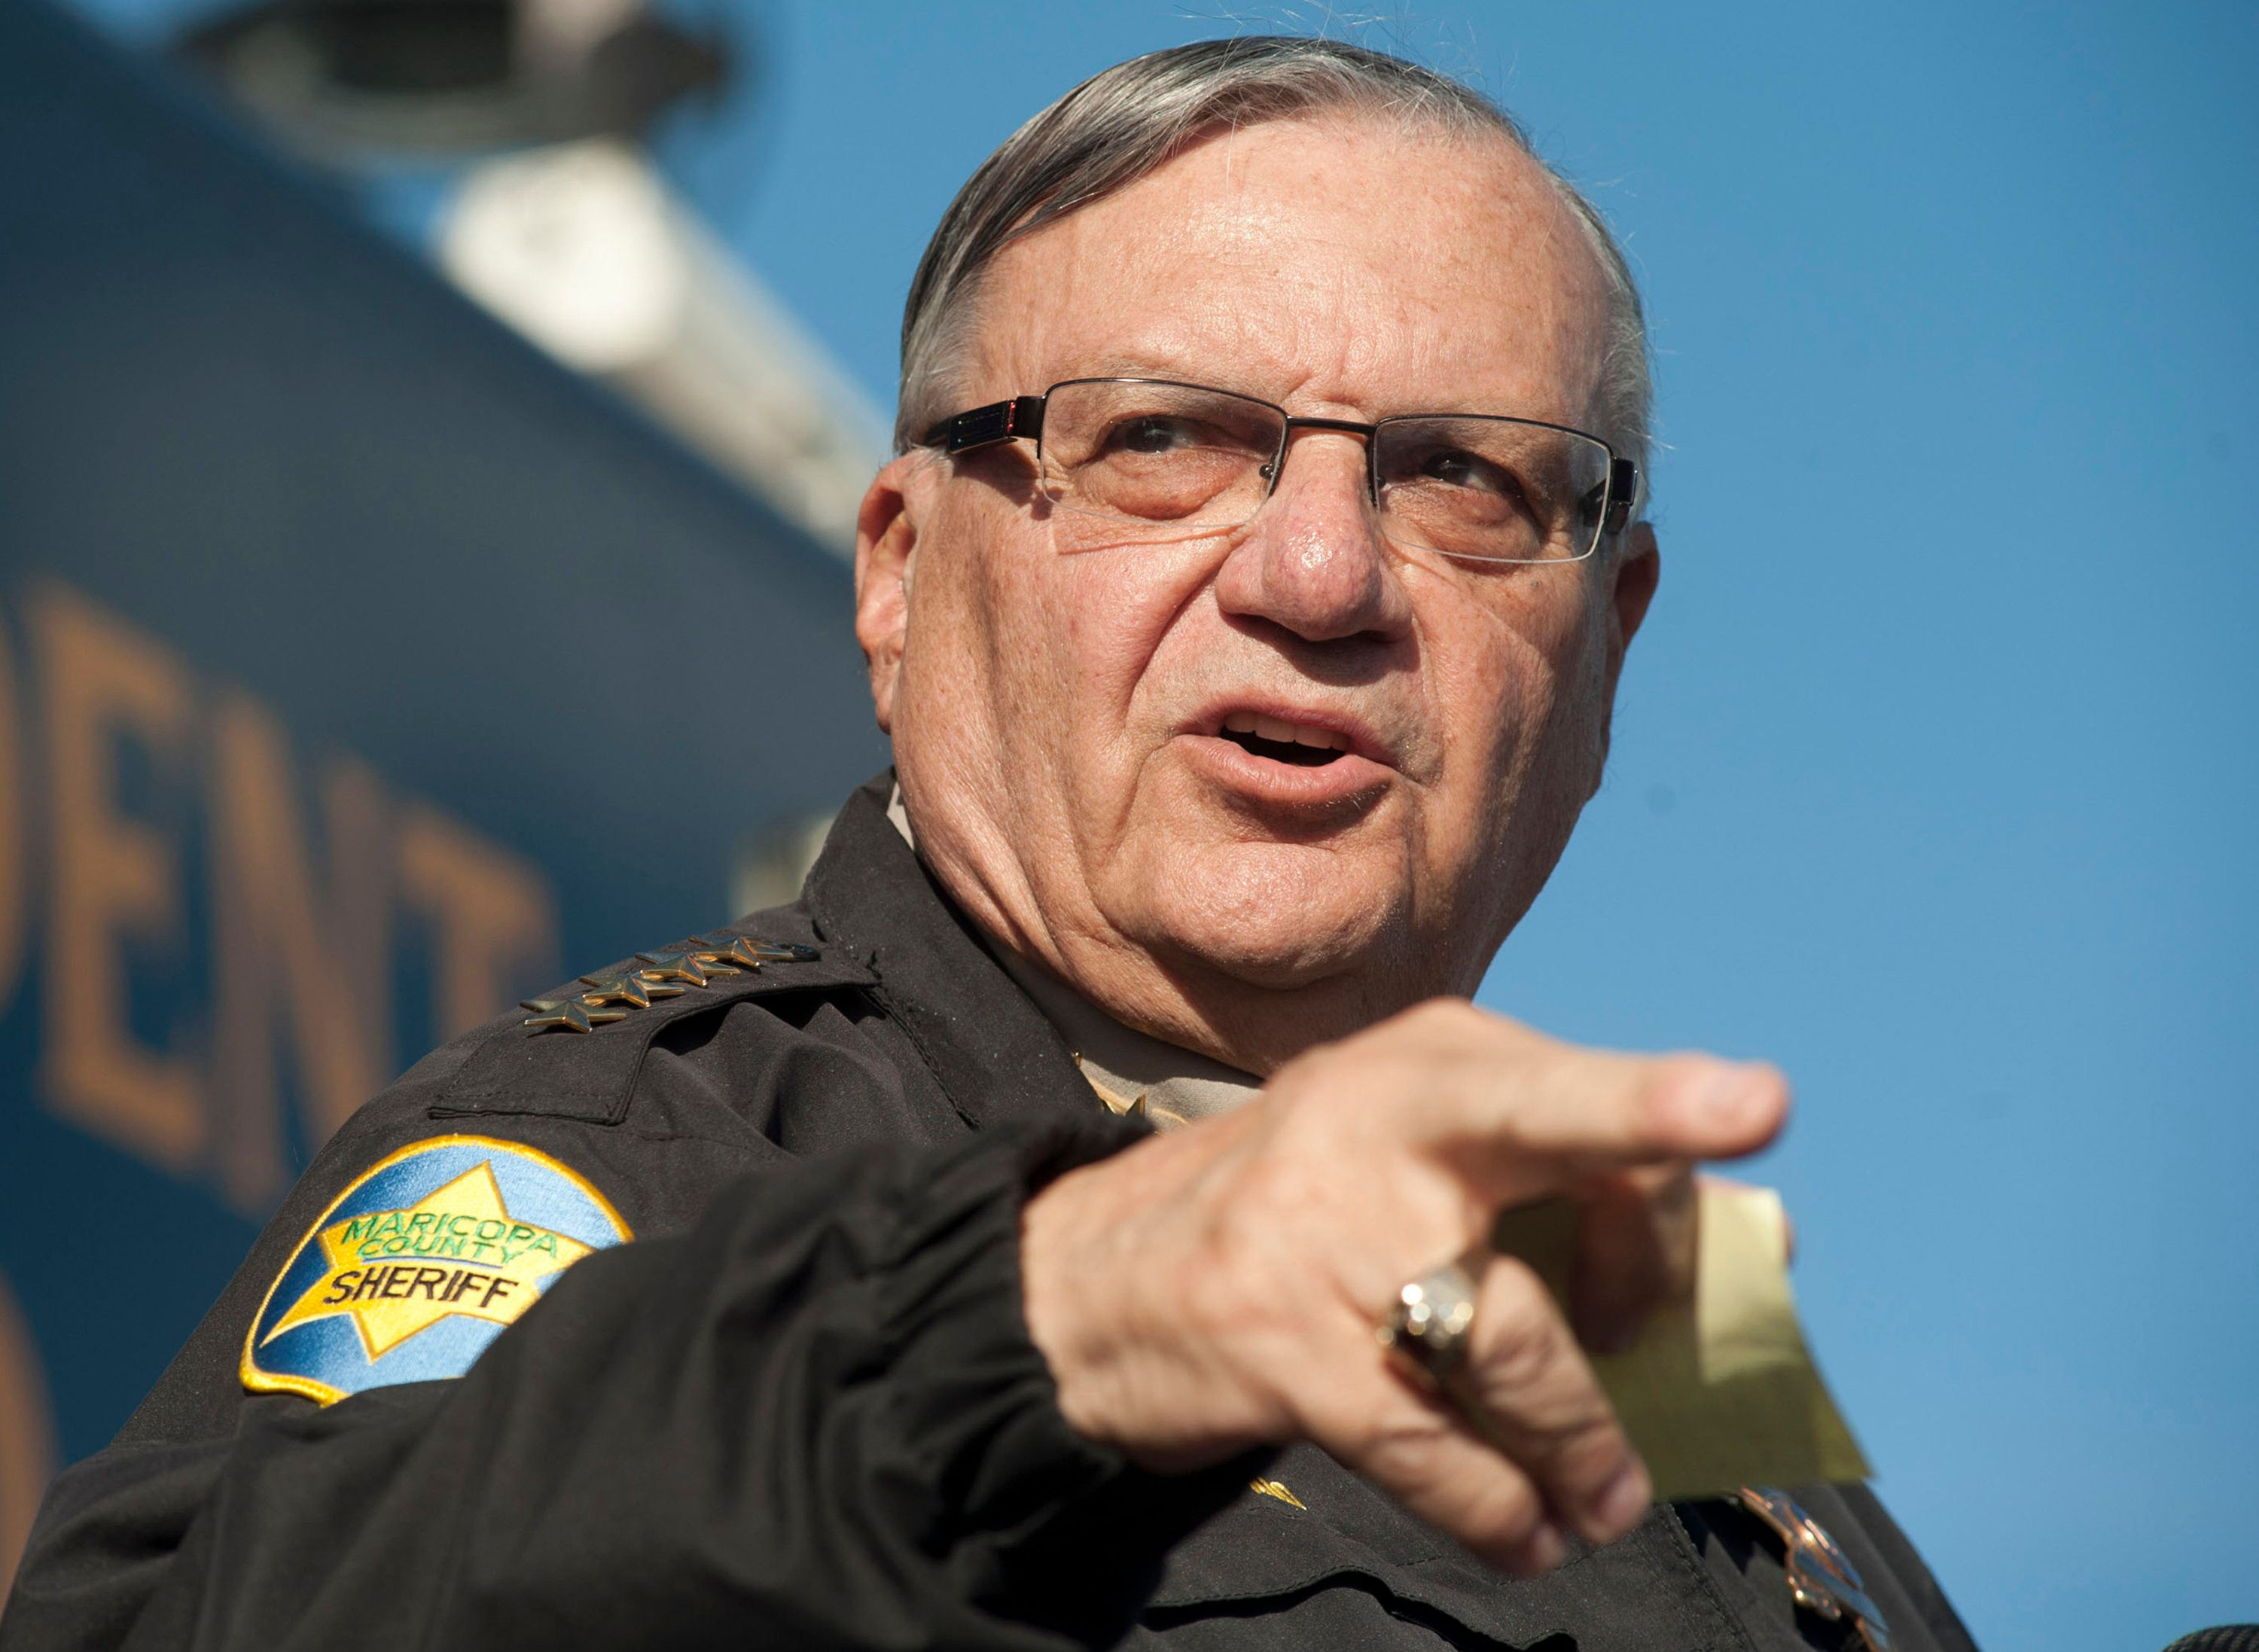 Maricopa County Sheriff Joe Arpaio announces newly launched program aimed at providing security around schools in Anthem, Arizona, U.S. January 9, 2013. REUTERS/Laura Segall/File Photo